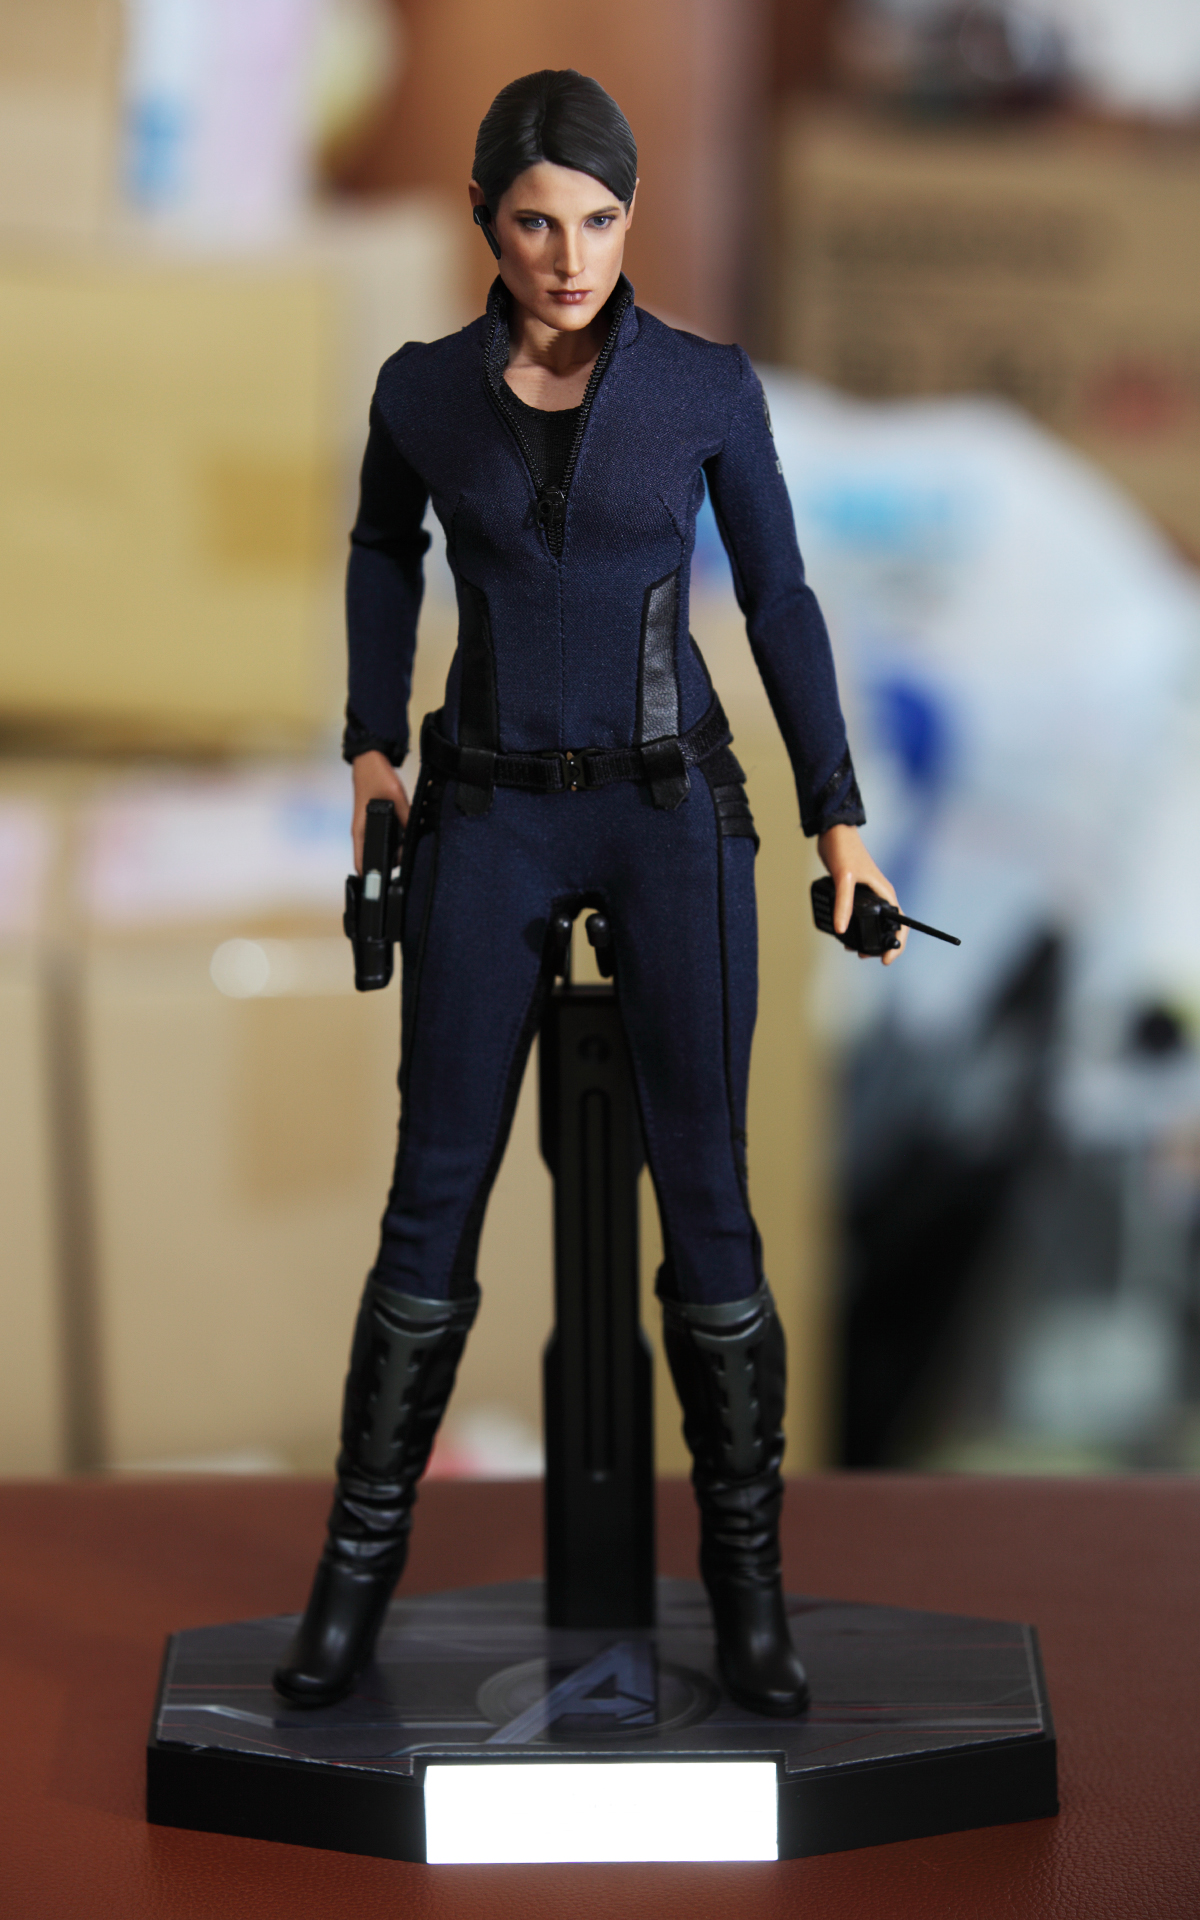 hottoys-avengers-age-of-ultron-maria-hill-picture14